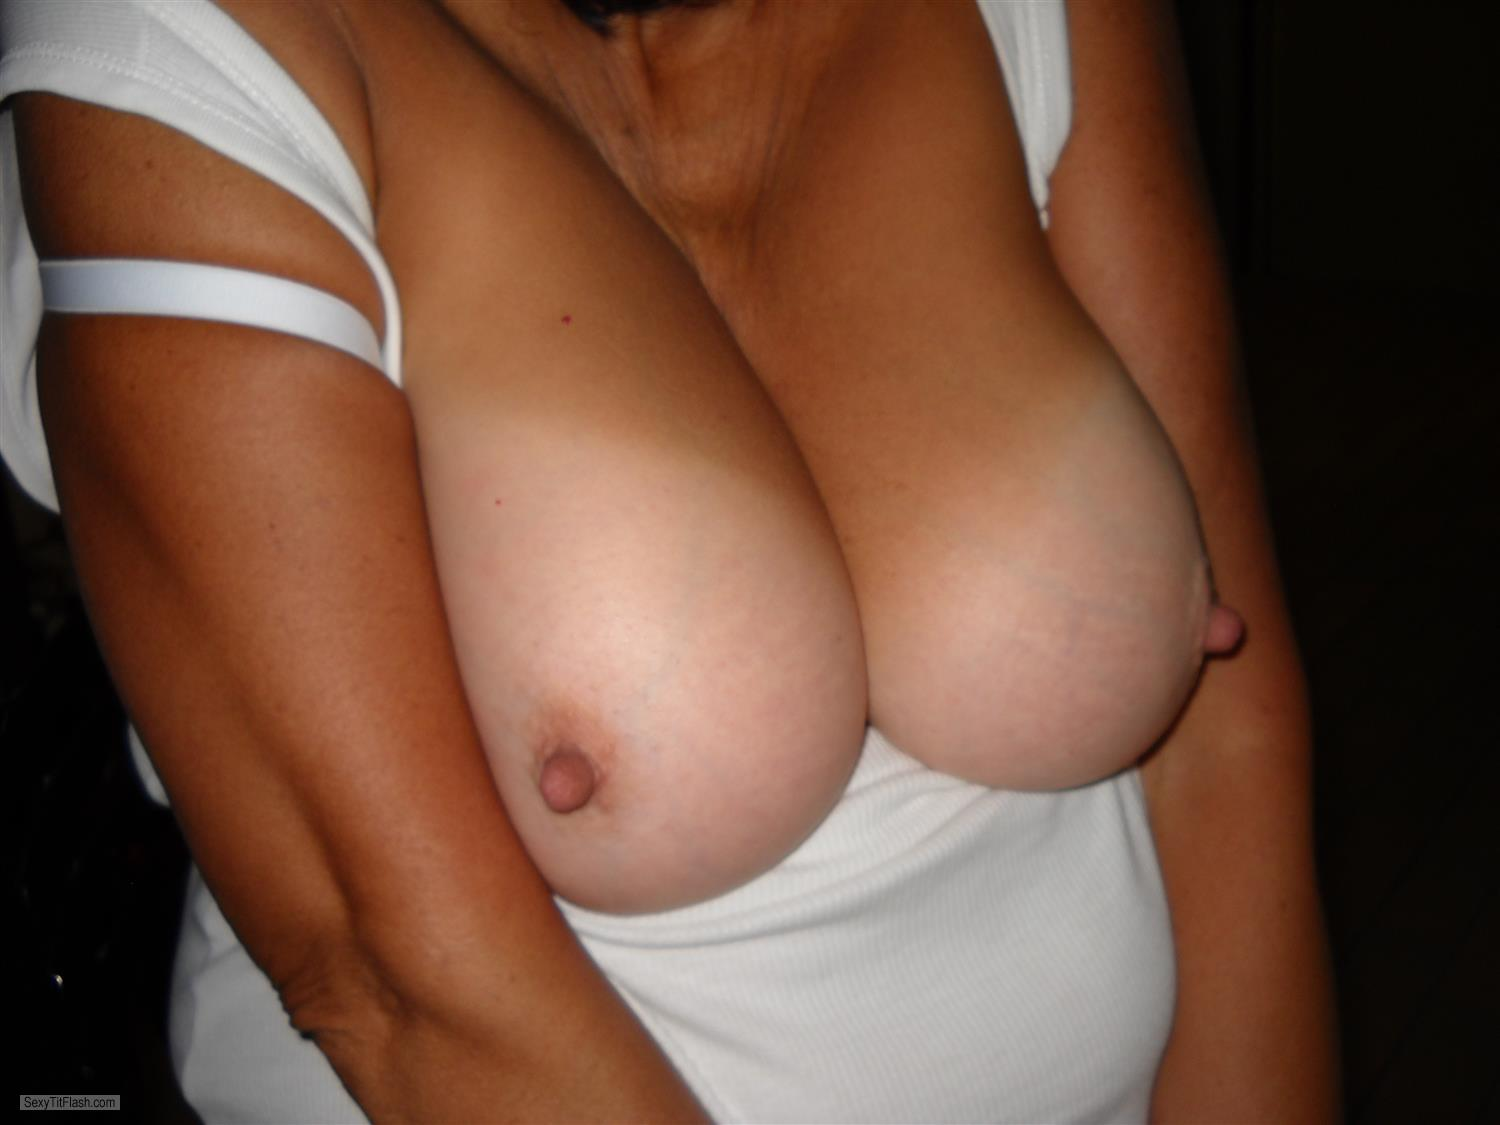 Tit Flash: My Big Tits With Strong Tanlines - SAlady from South Africa